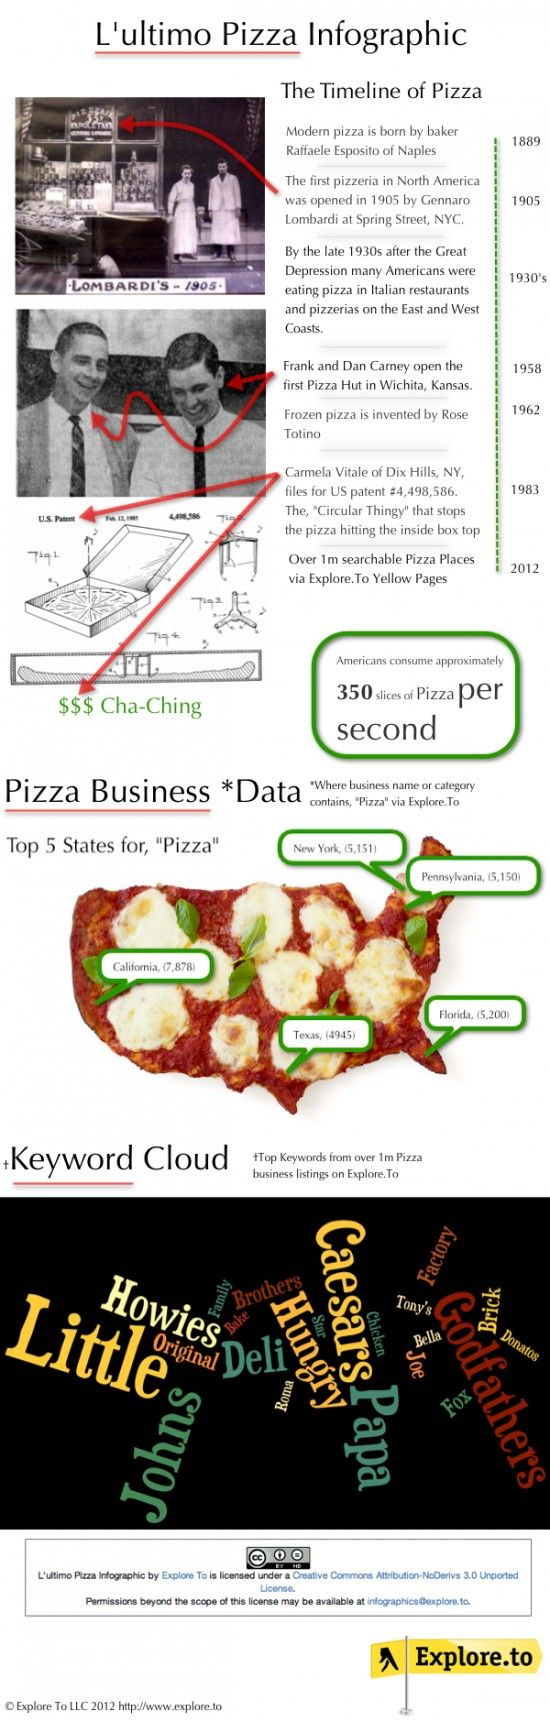 How many slices of Pizza are eaten per second in America? More fun facts.